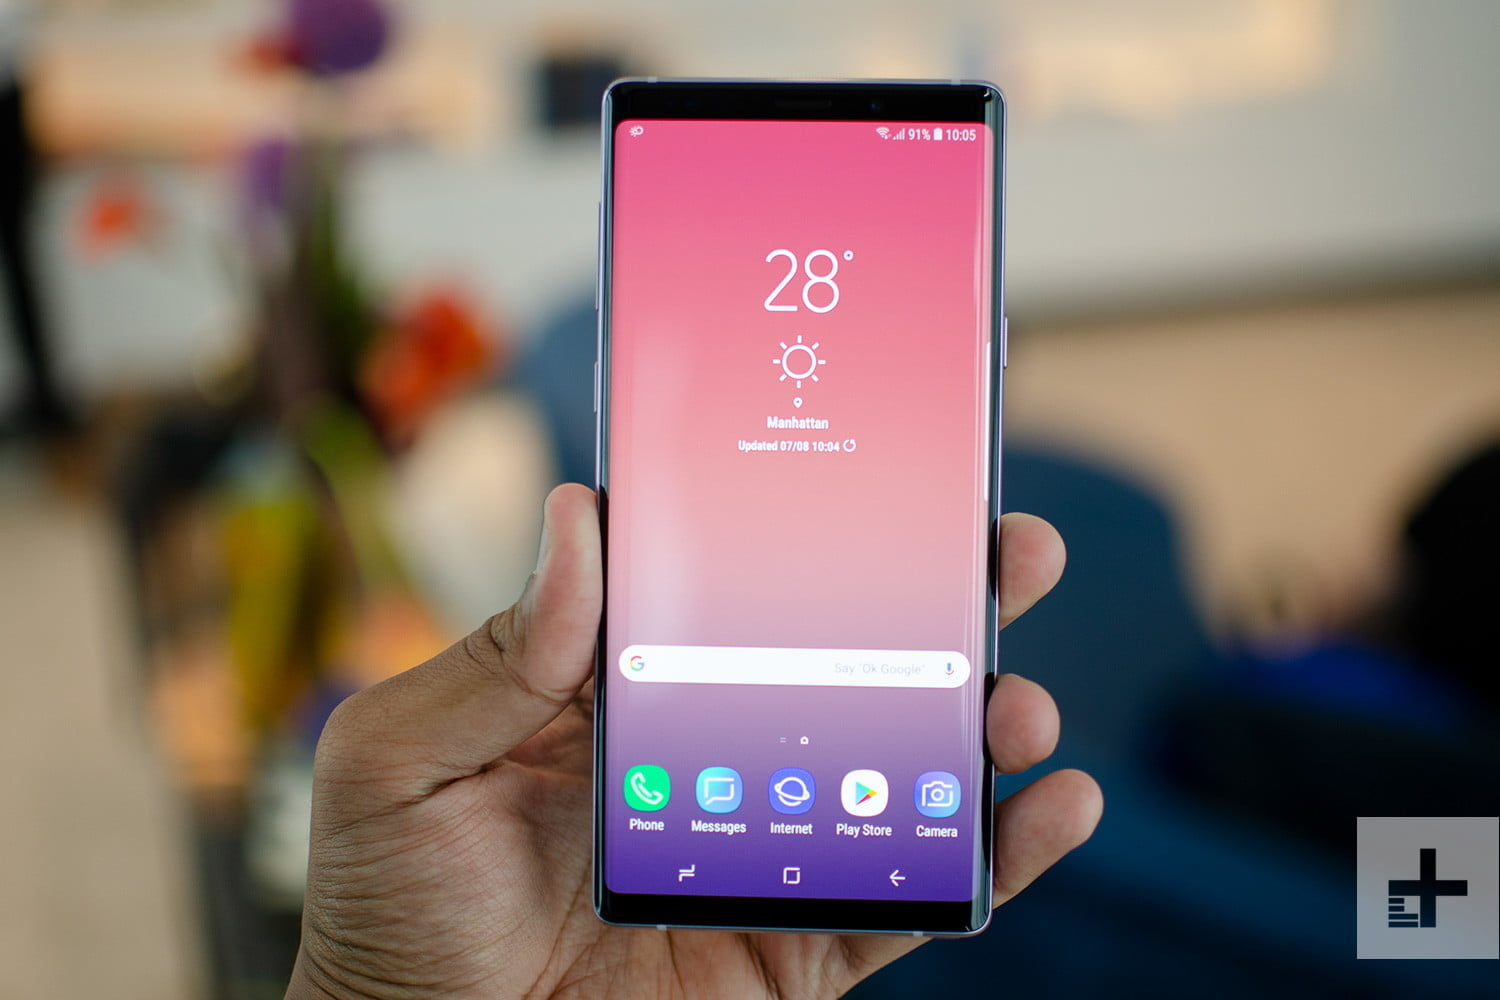 Samsung Galaxy Note 9 Vs S9 Plus Digital Trends 3 White Gold